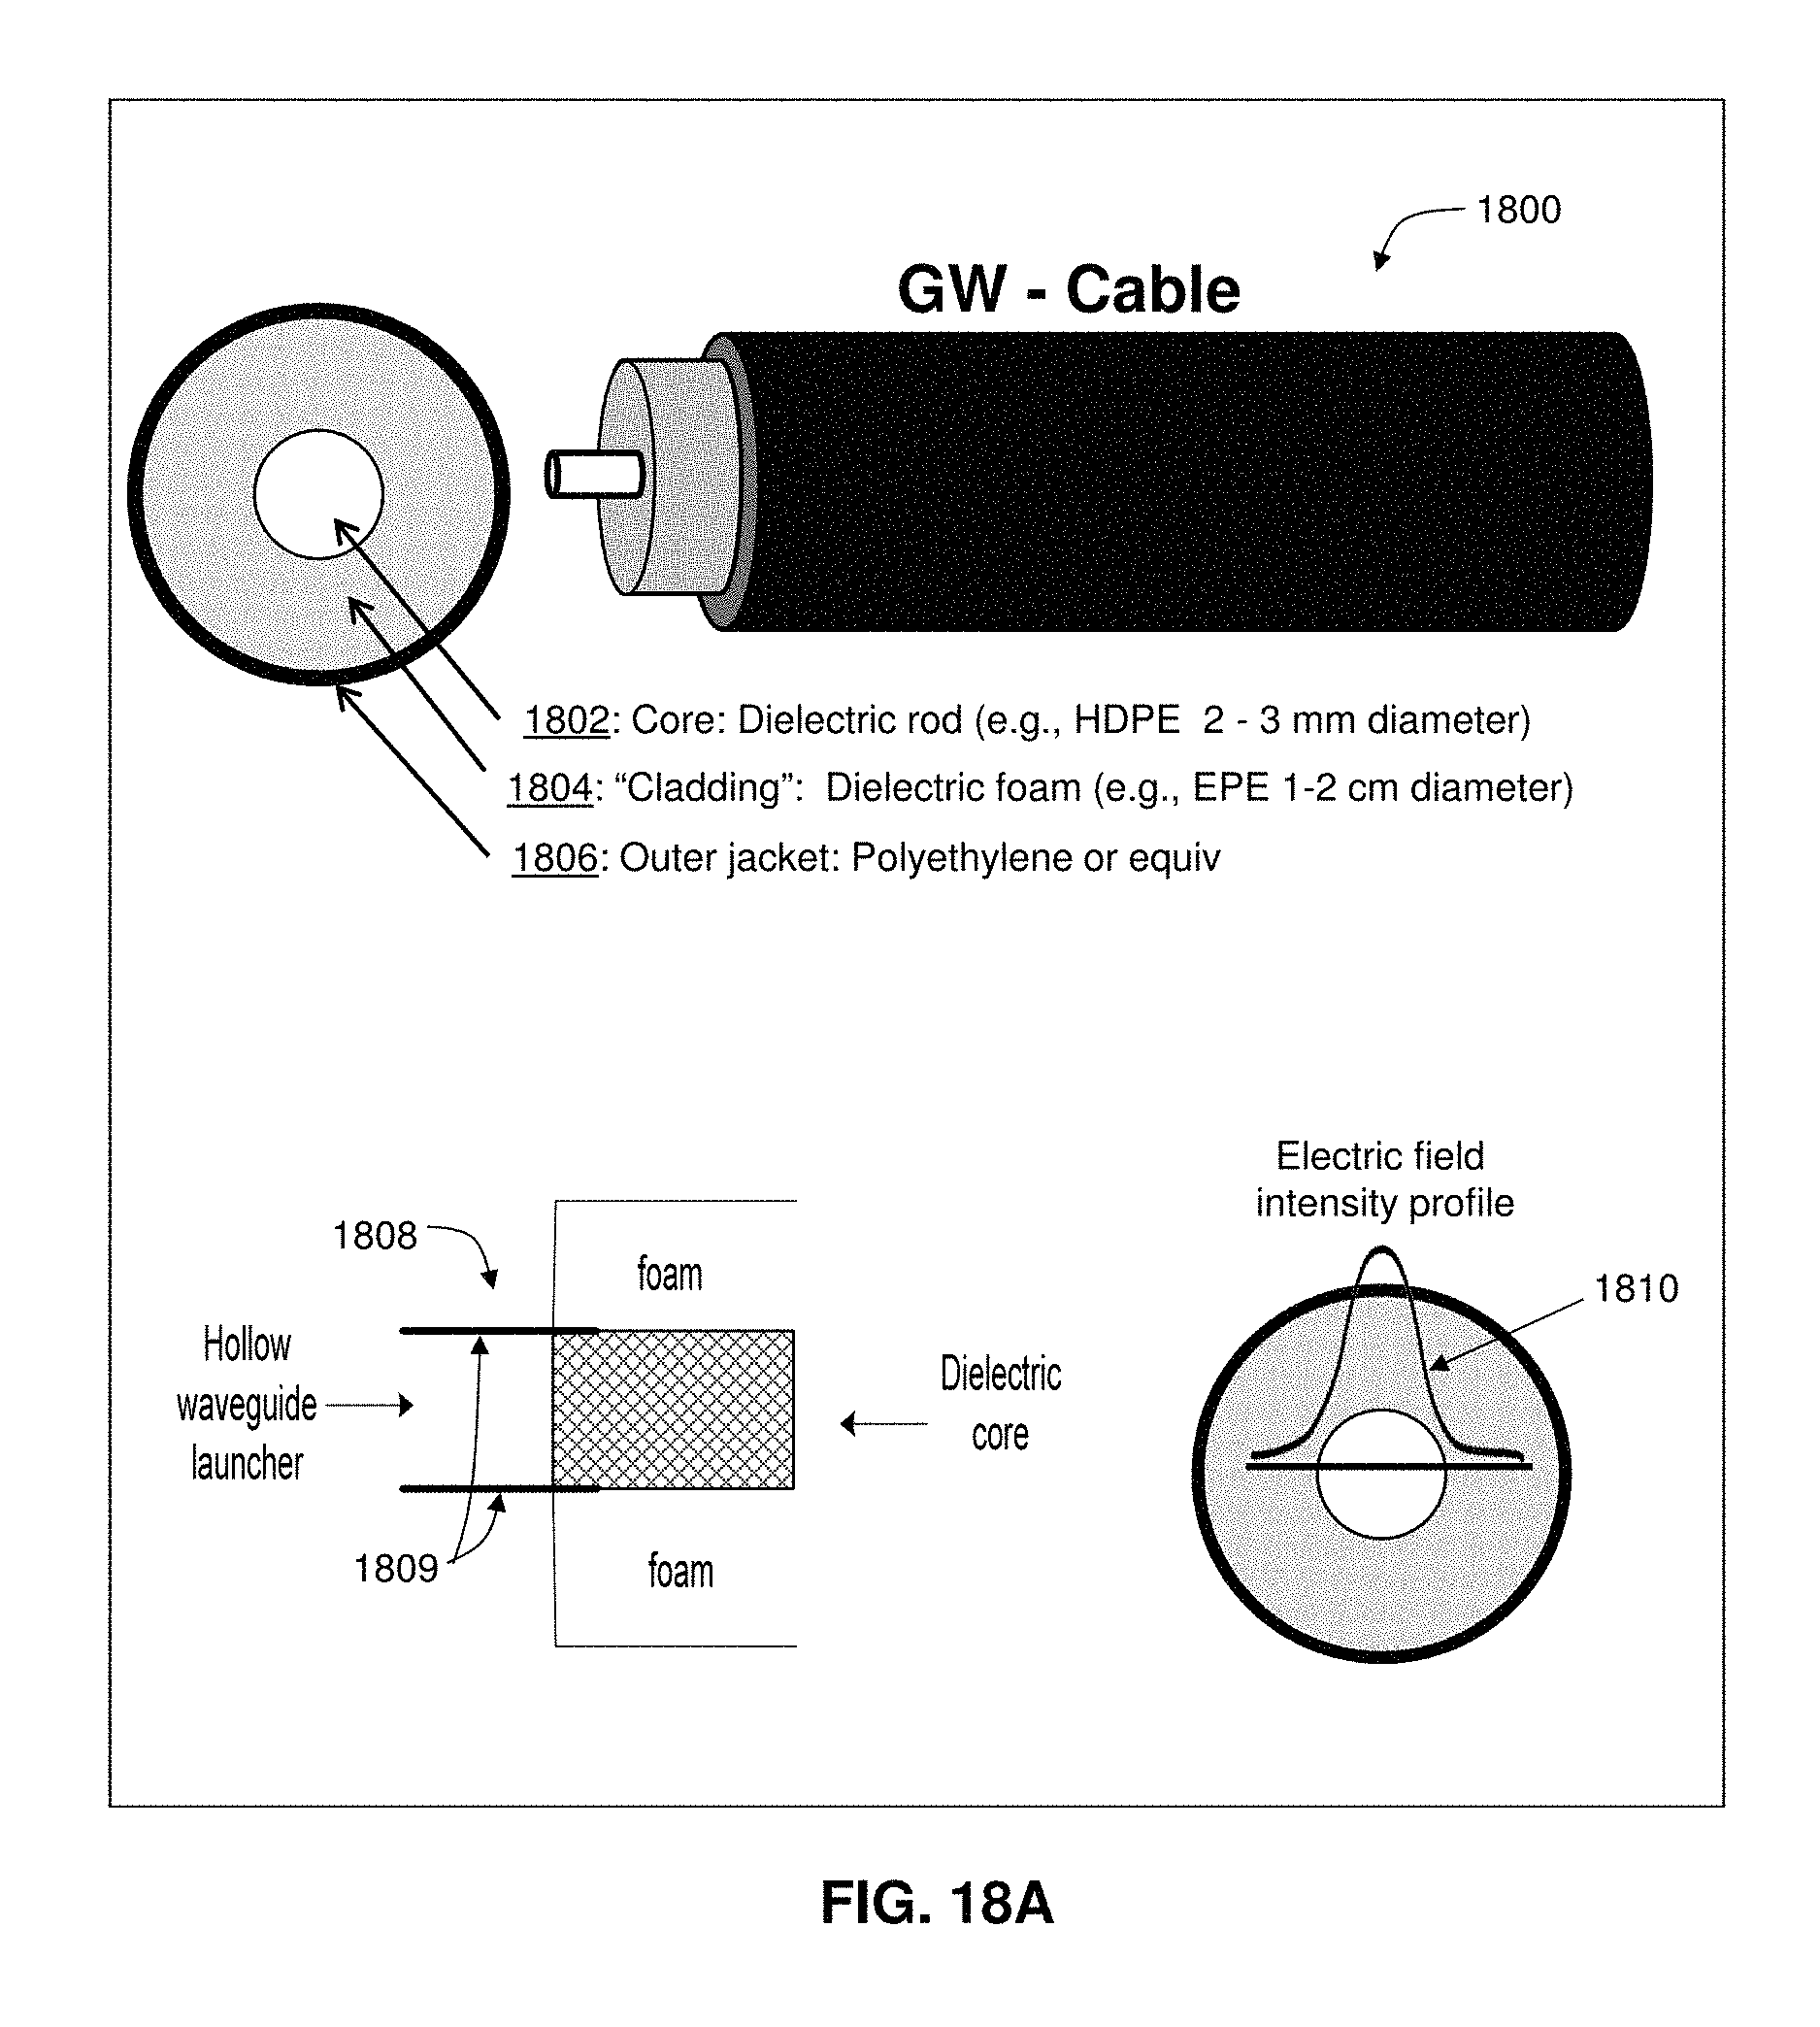 Us9742462b2 Transmission Medium And Communication Interfaces Fiber One Sided Copper Clad Laminate Pcb Circuit Board 30x20cm Ebay Methods For Use Therewith Google Patents